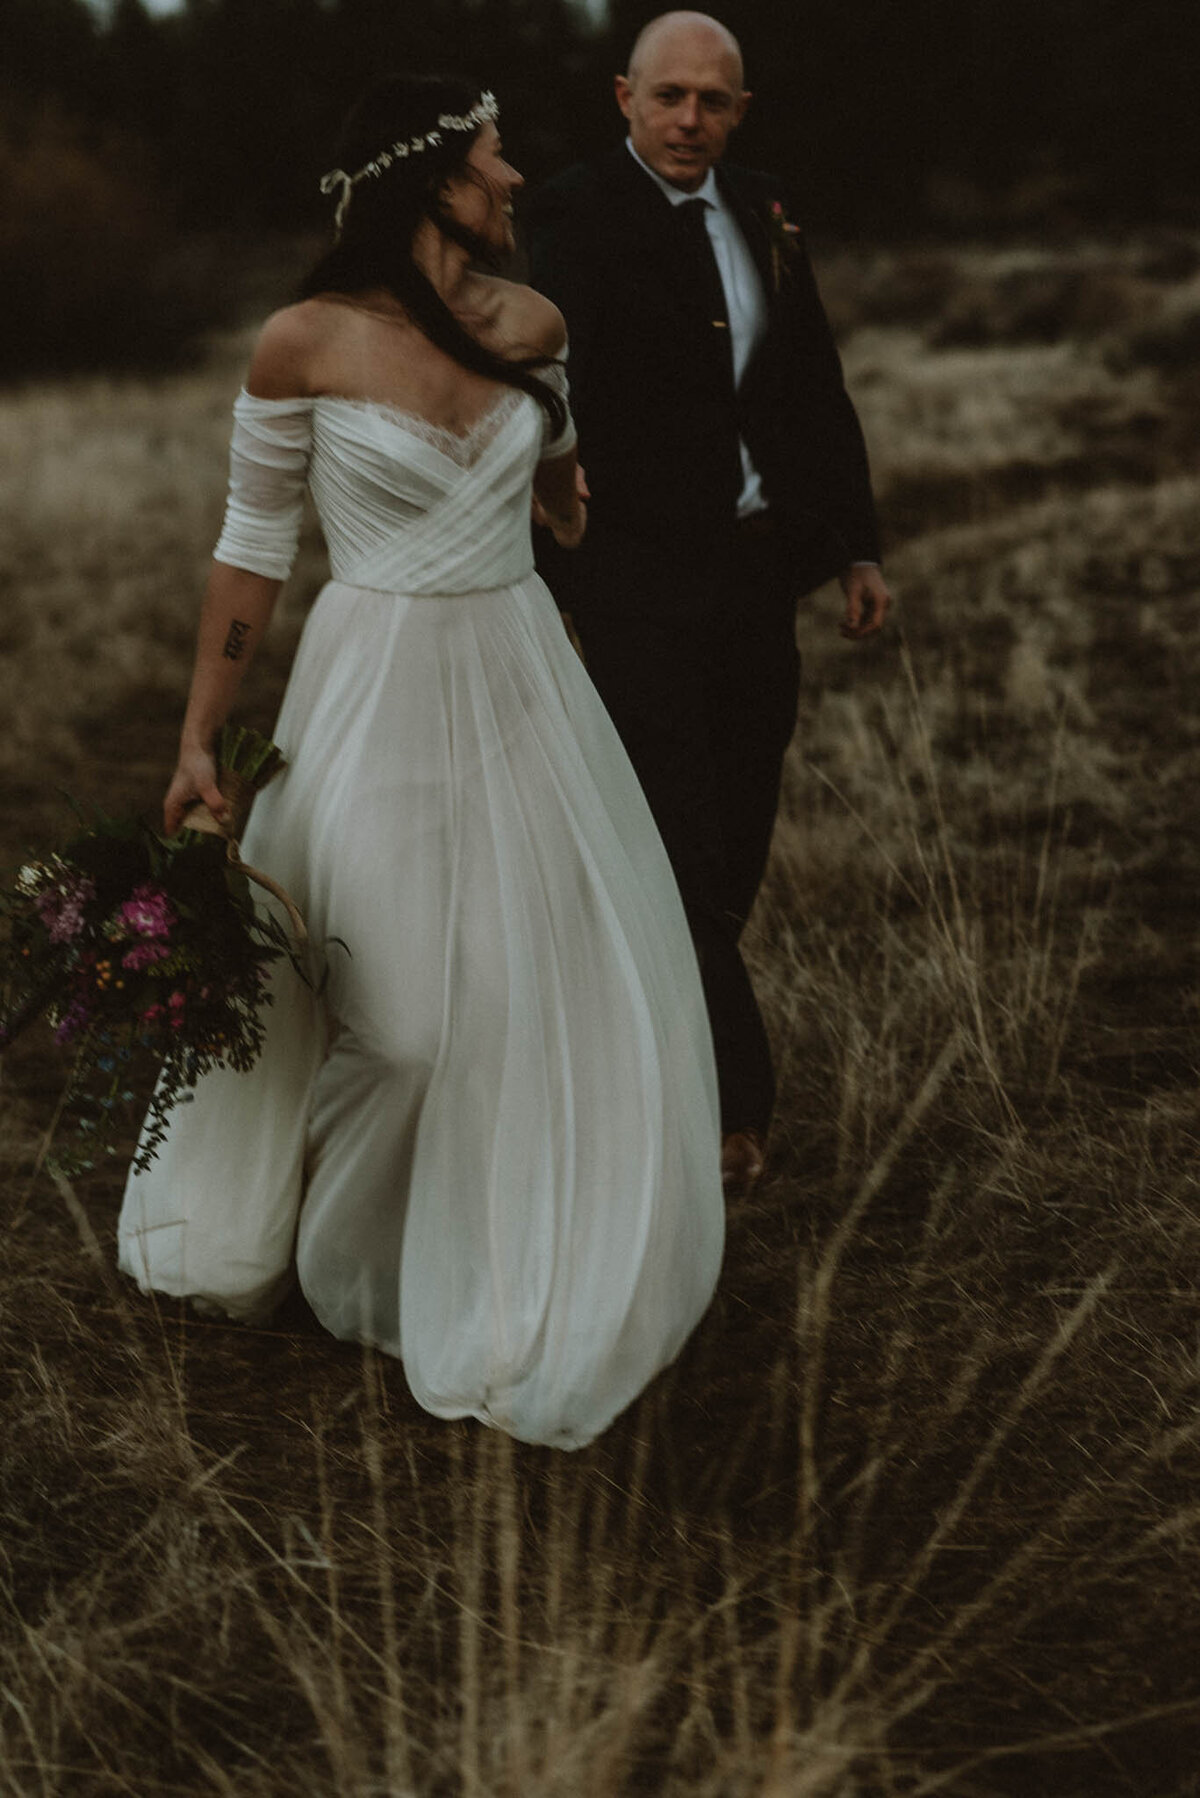 meredith_j_photography_elopement (7 of 8)